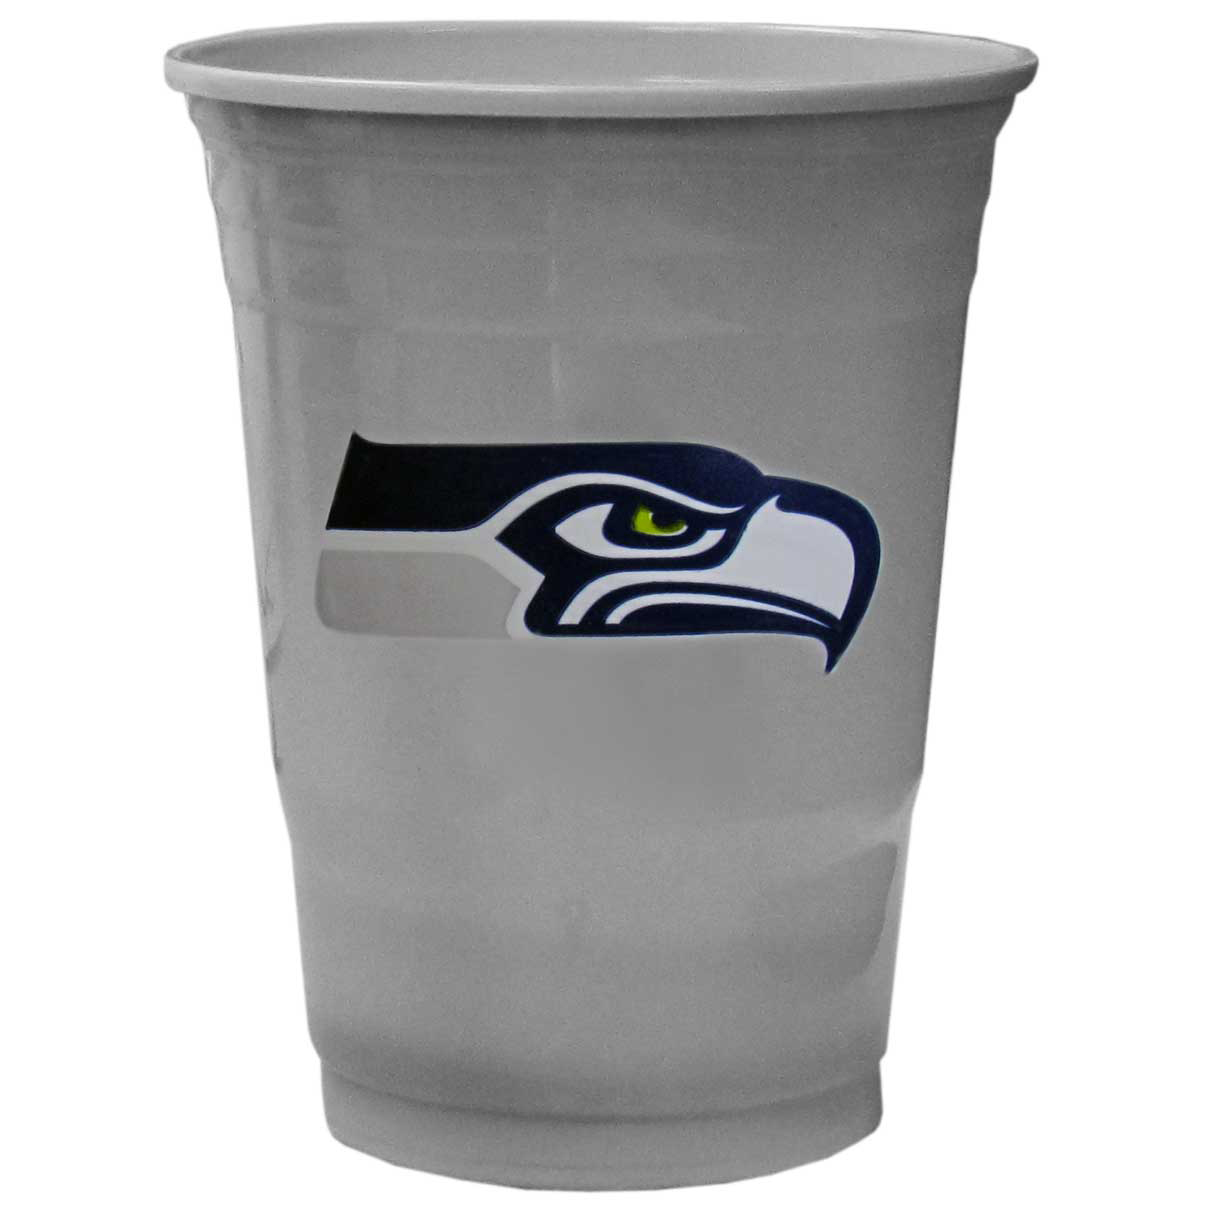 Seattle Seahawks Plastic Game Day Cups 2 sleeves of 18 (36 Cups) - Our 18 ounce game day cups are what every tailgating or backyard events needs! The cups feature a big Seattle Seahawks logo so you can show off your team pride. The popular 18 ounce size is perfect for drinks or ping pong balls! 2 sleeves of 18 cups, 36 cups in total.